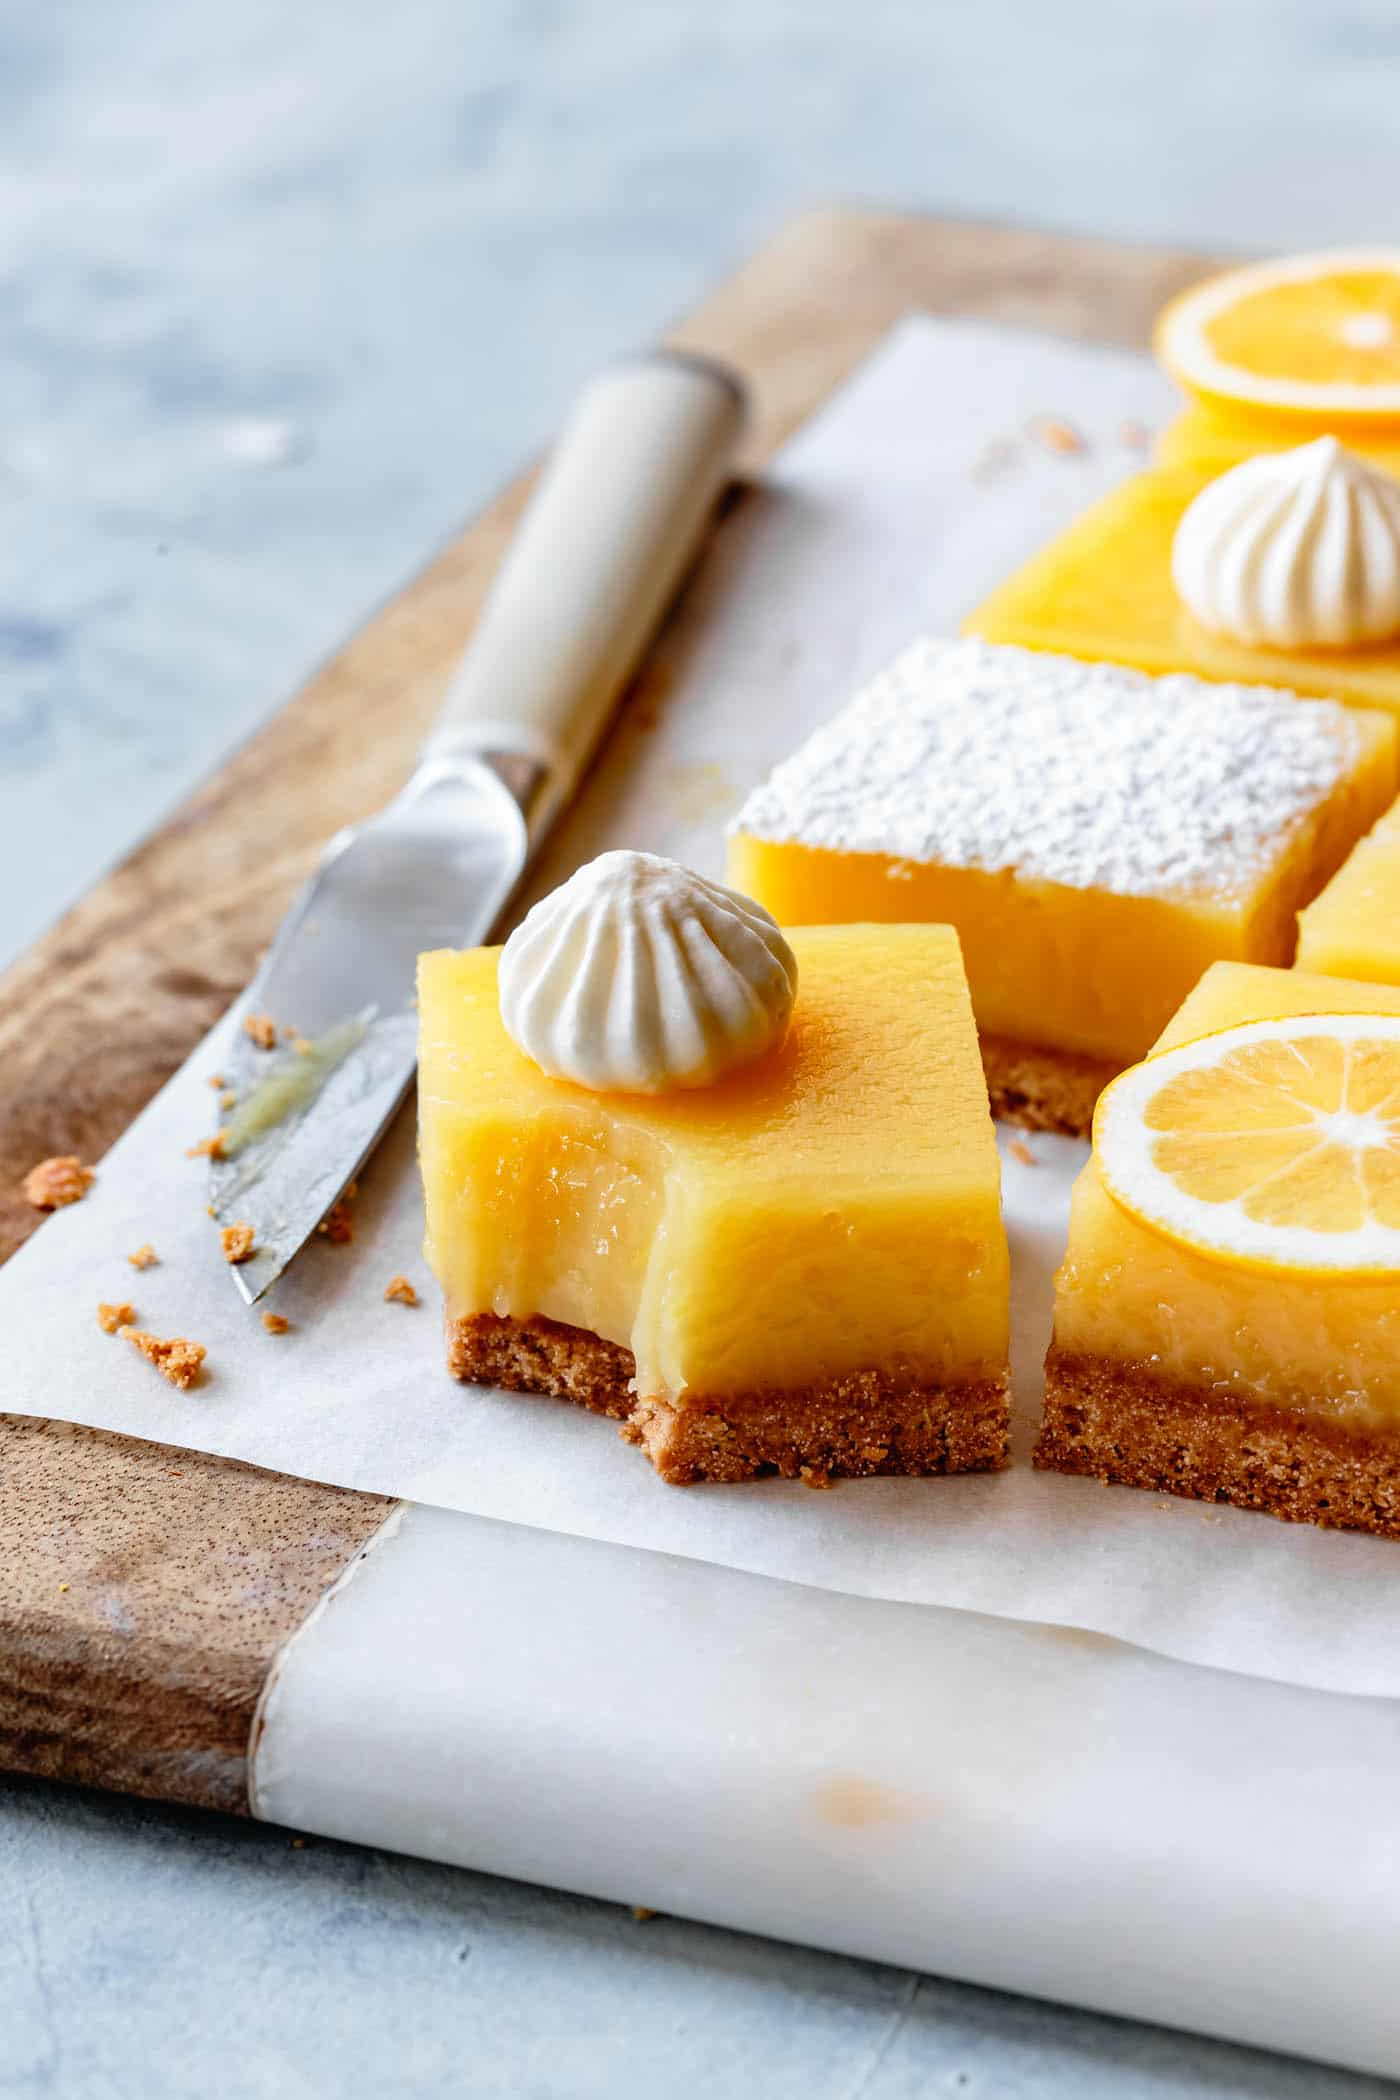 Gluten-free lemon bars recipe with a bite taken out